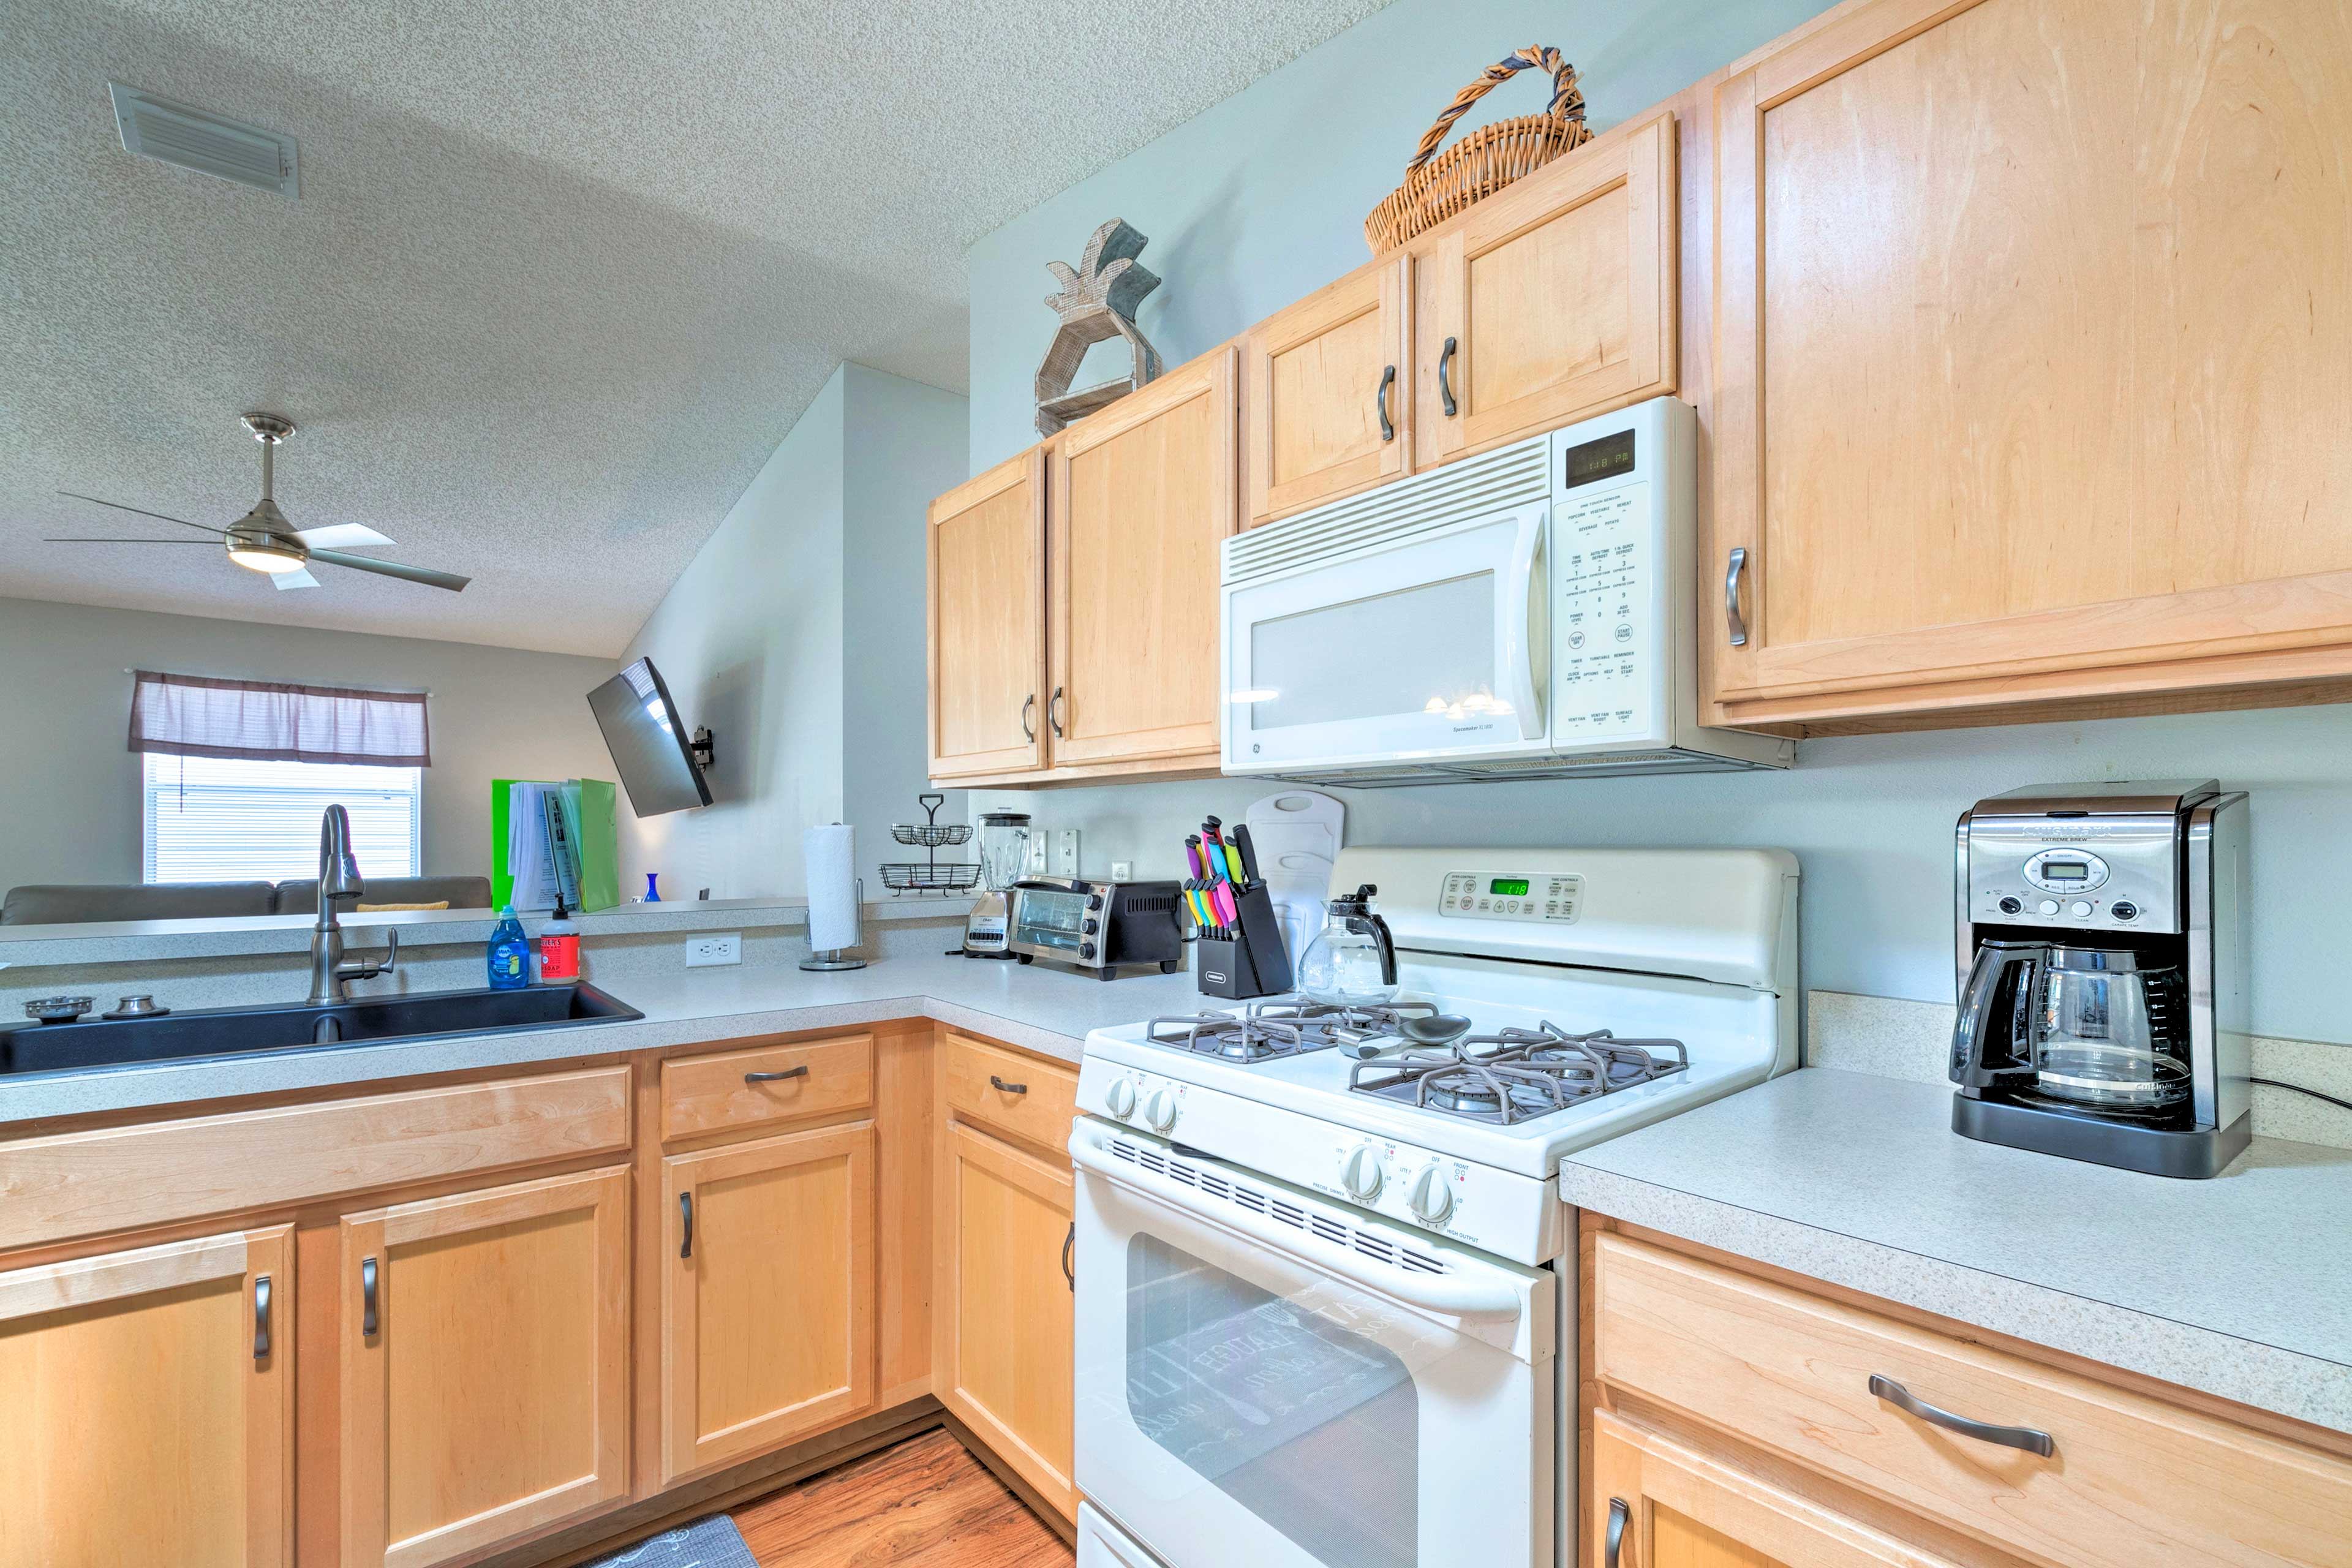 The kitchen comes fully equipped with everything you need!